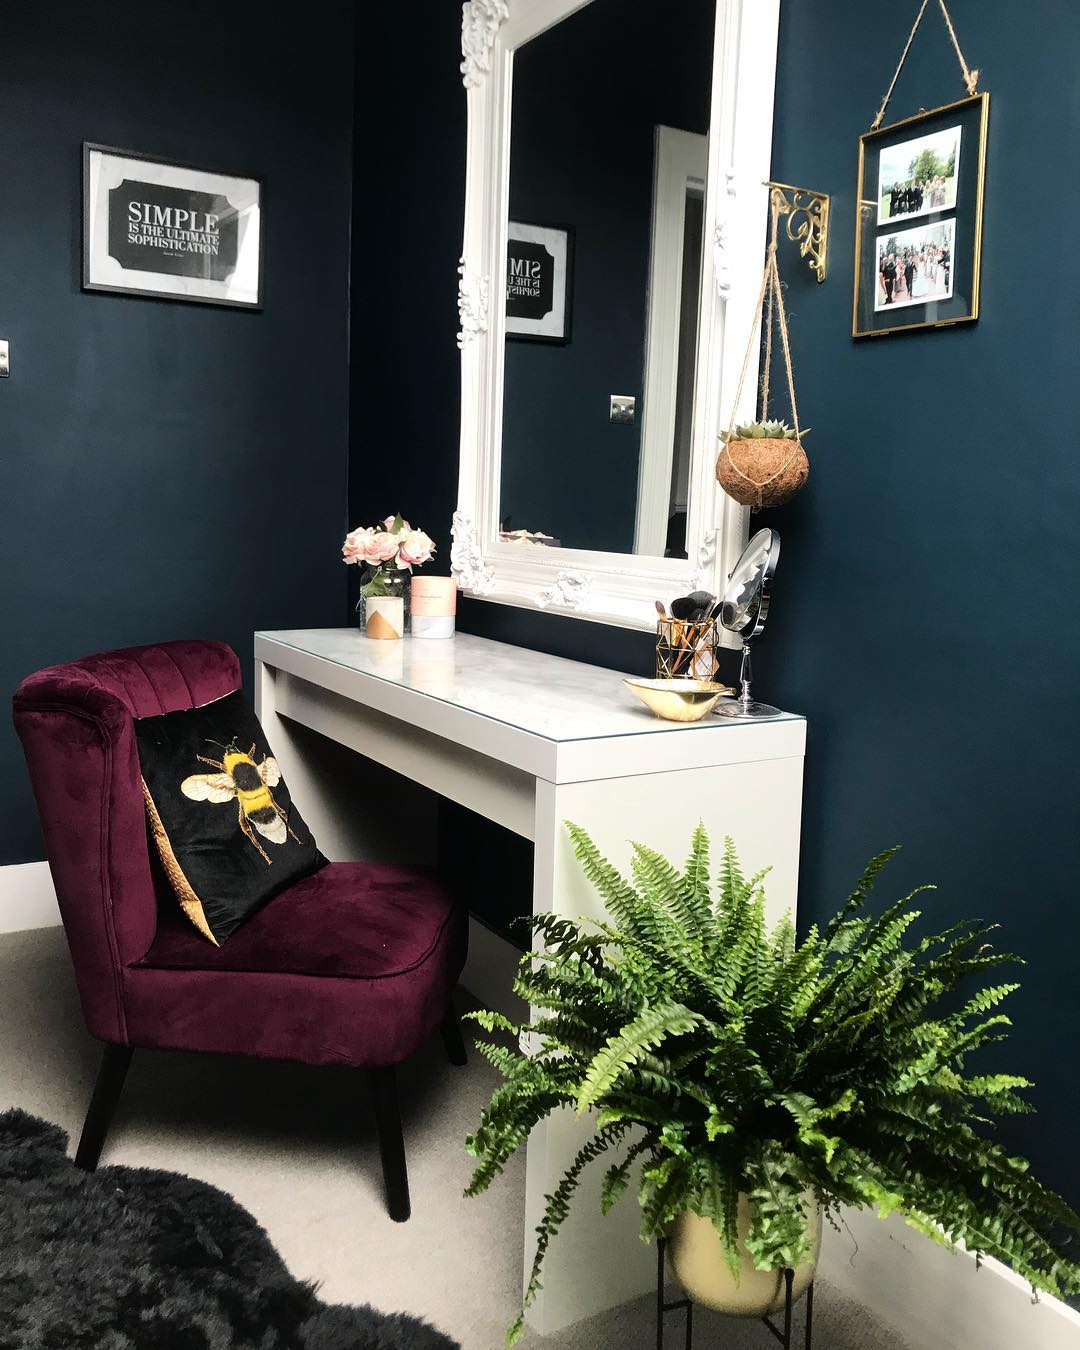 Charcoal Gray Farrow & Ball Hague Blue Paint Color Schemes - Interiors